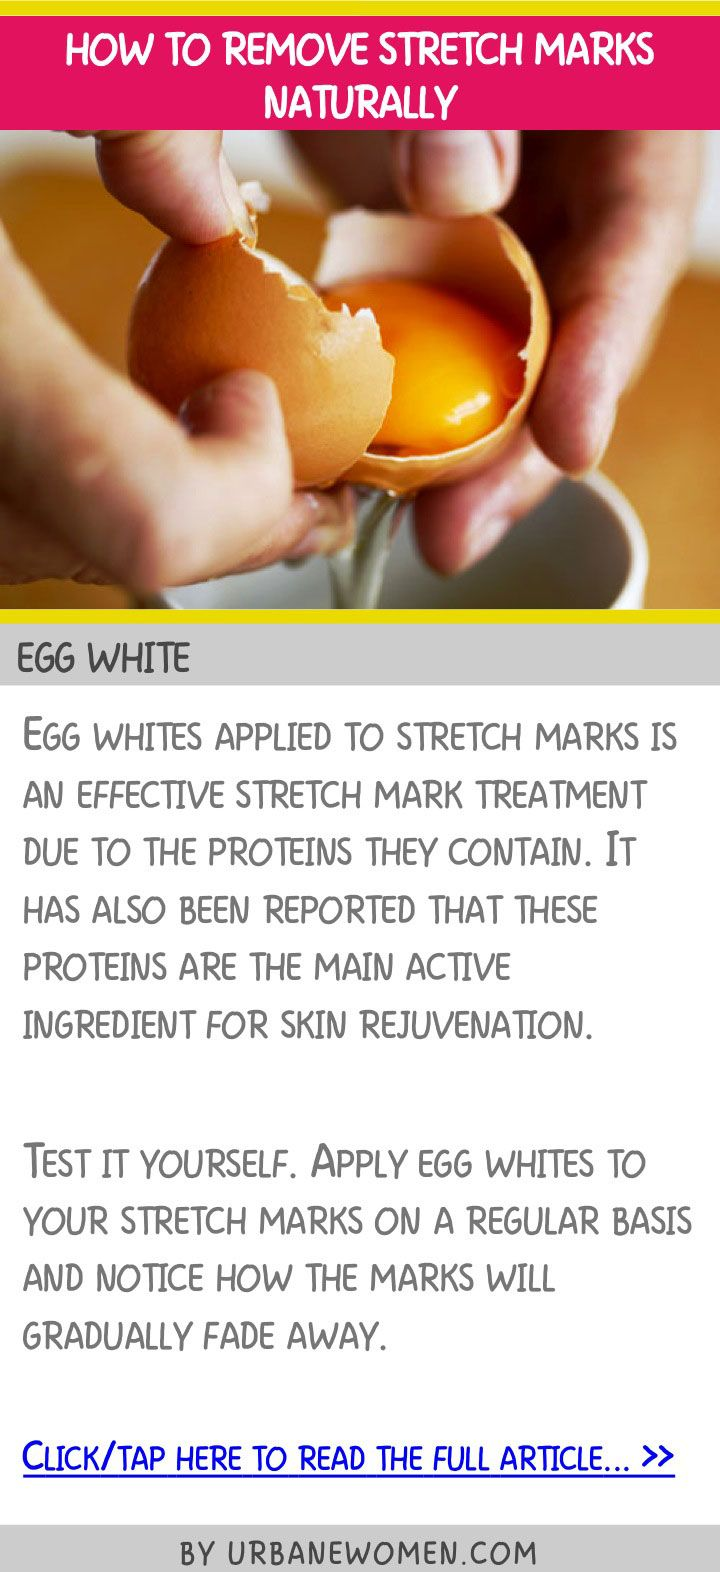 stretch marks removal remove mark beauty egg strech naturally diy cream skin remover natural removing makeup